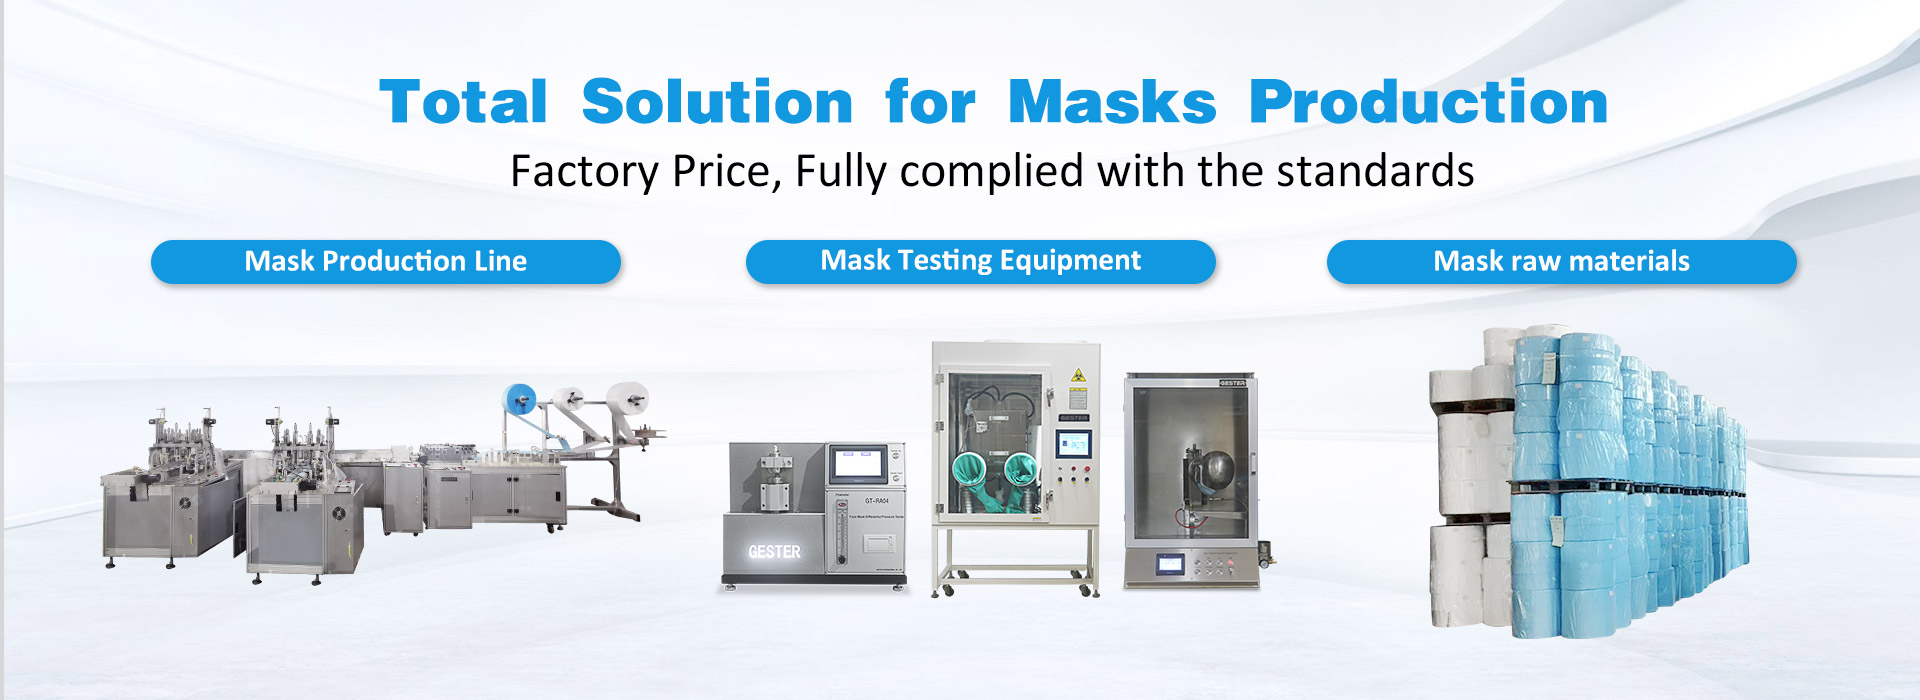 Total Solution for Masks Production